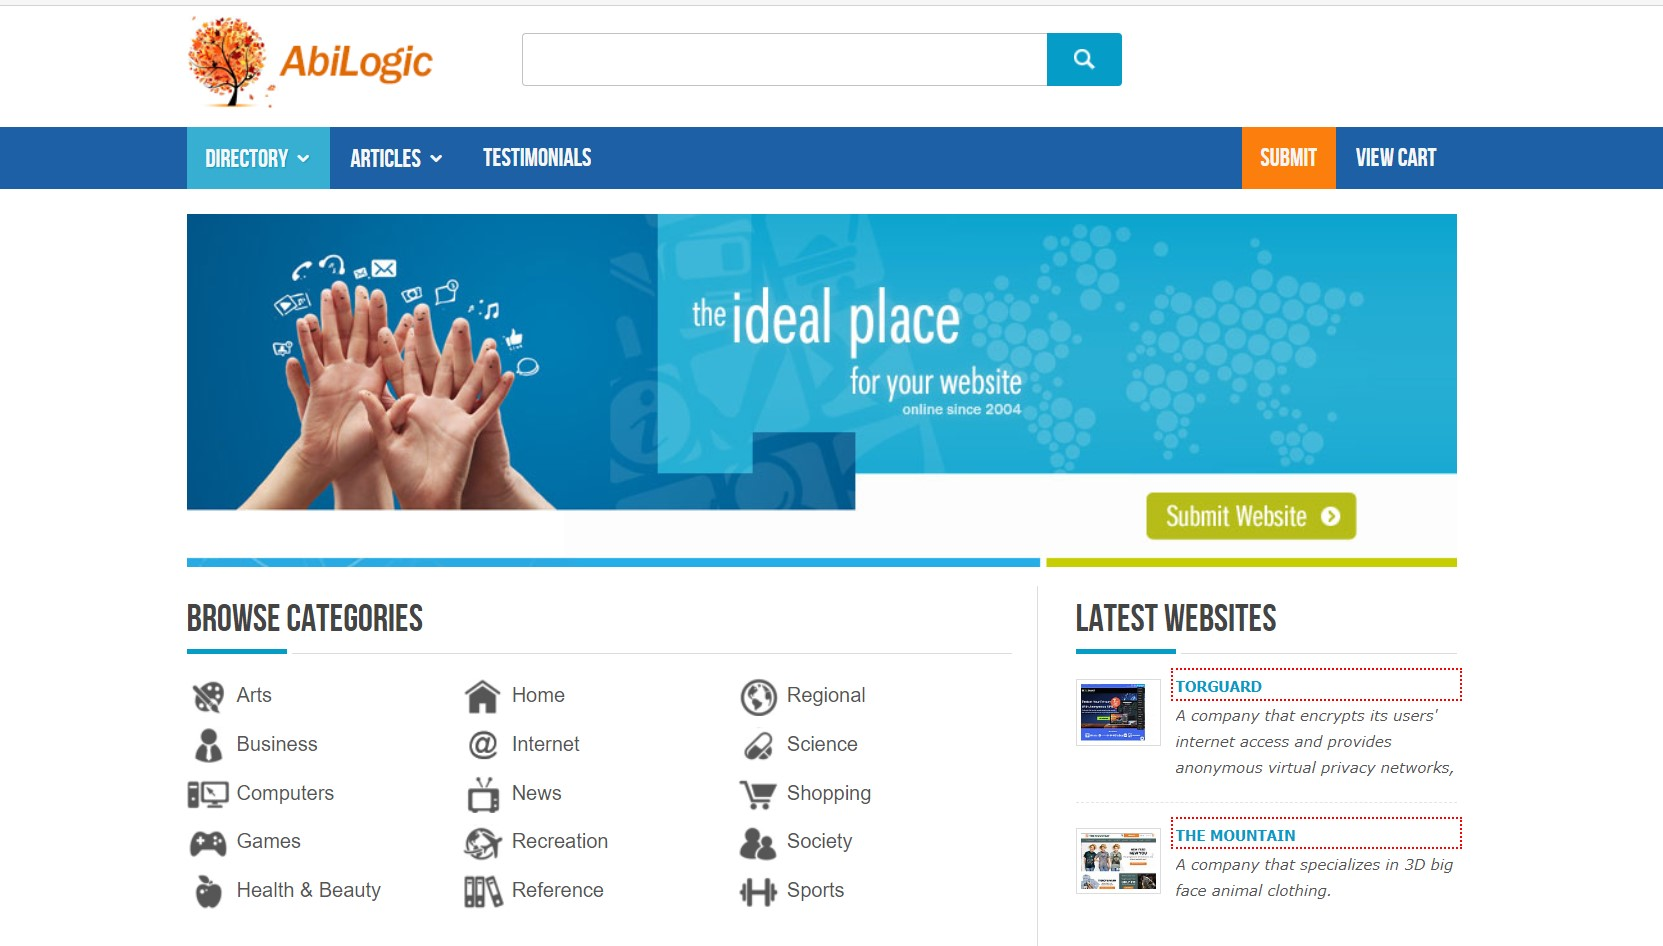 Publish a Guest Post On Abilogic. com With a Dofollow Link